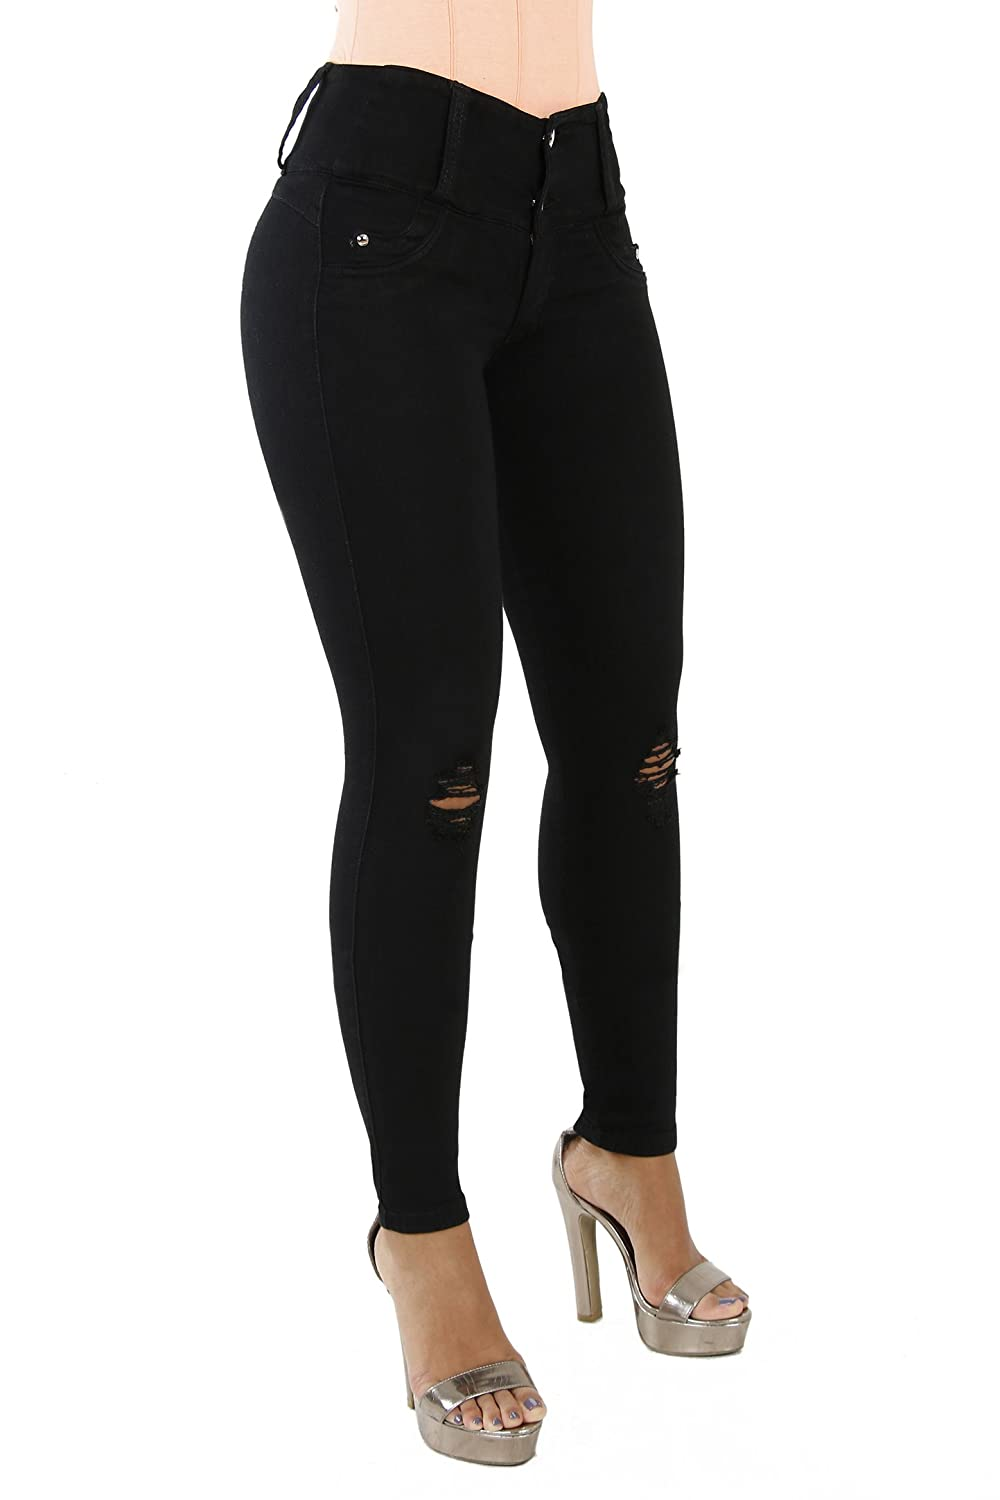 Blackd2 Curvify 764 Women's ButtLifting Skinny Jeans   HighRise Waist, Brazilian Style